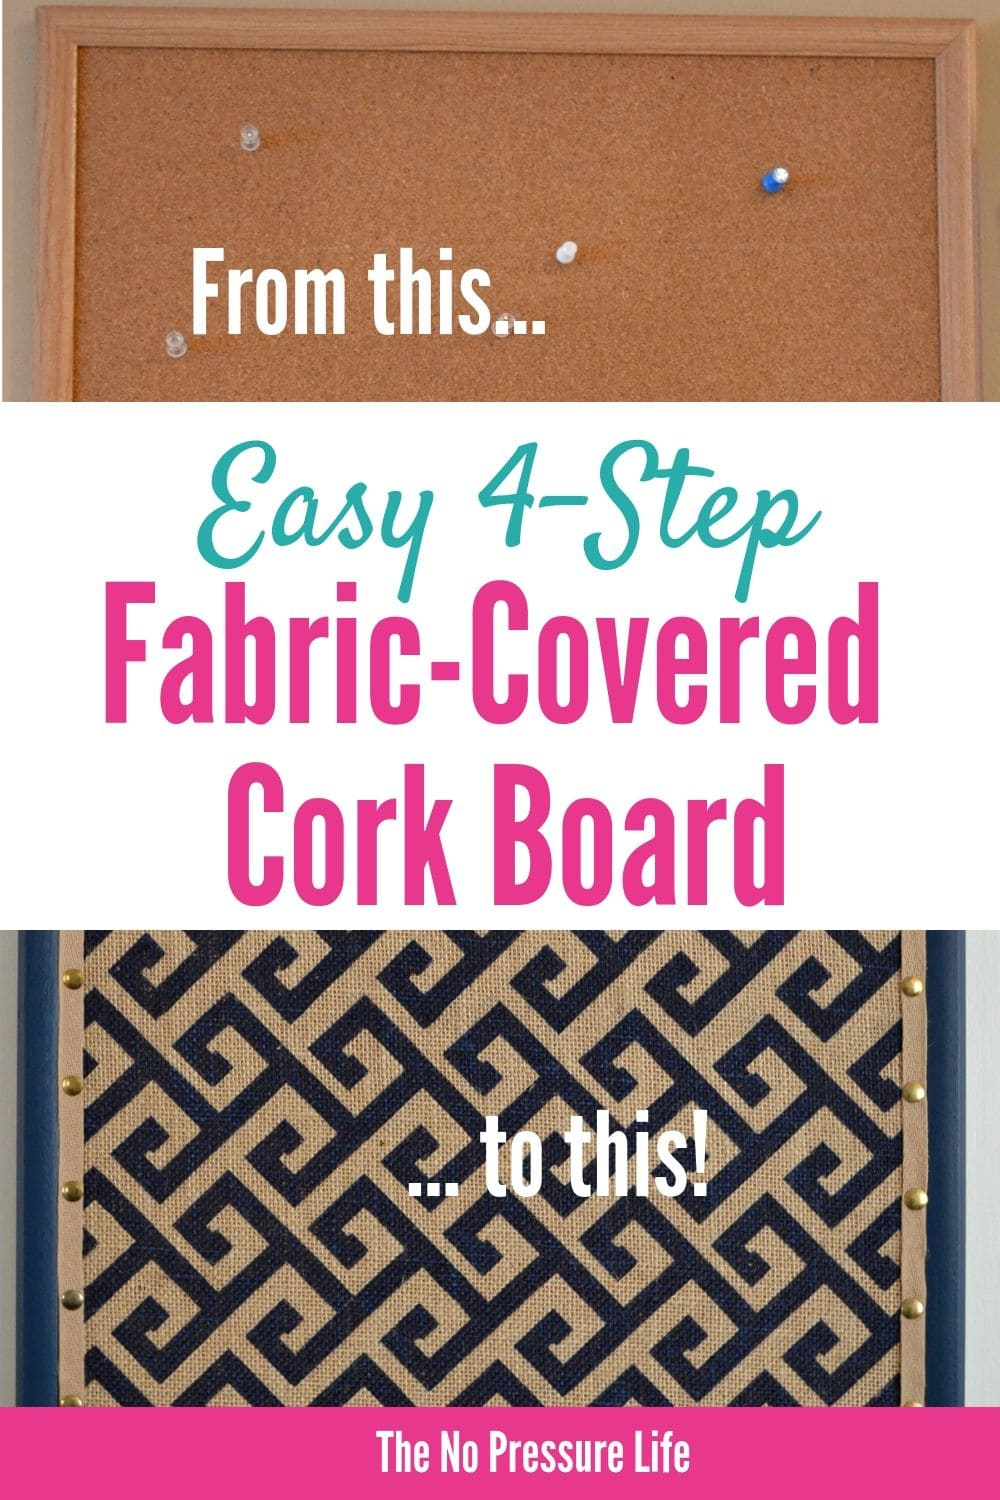 learn how to cover a cork board with fabric